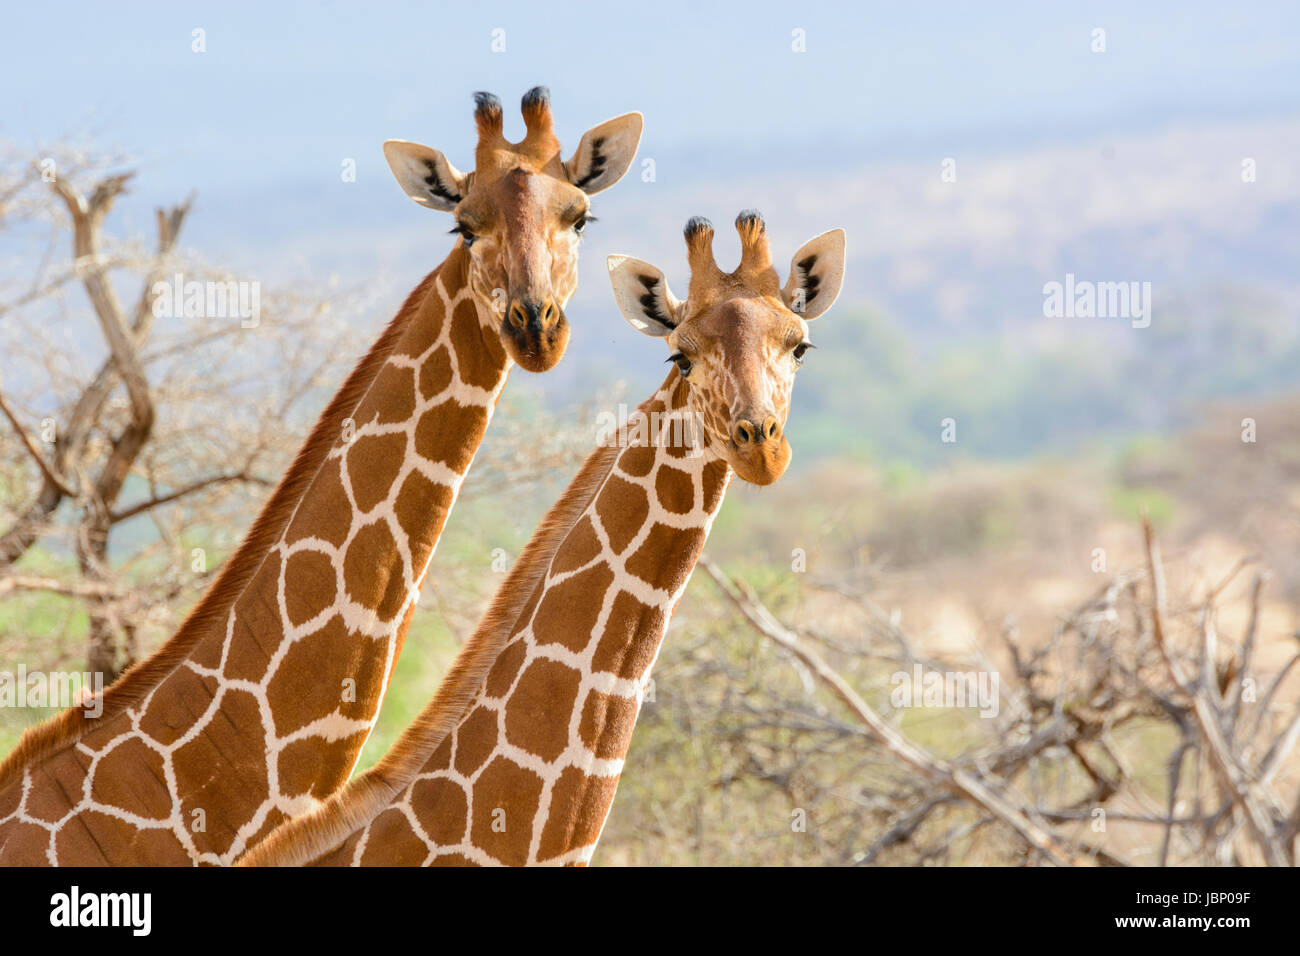 Two Reticulated Giraffes, Giraffa camelopardalis reticulata, adult and juvenile, looking at the camera, Buffalo - Stock Image